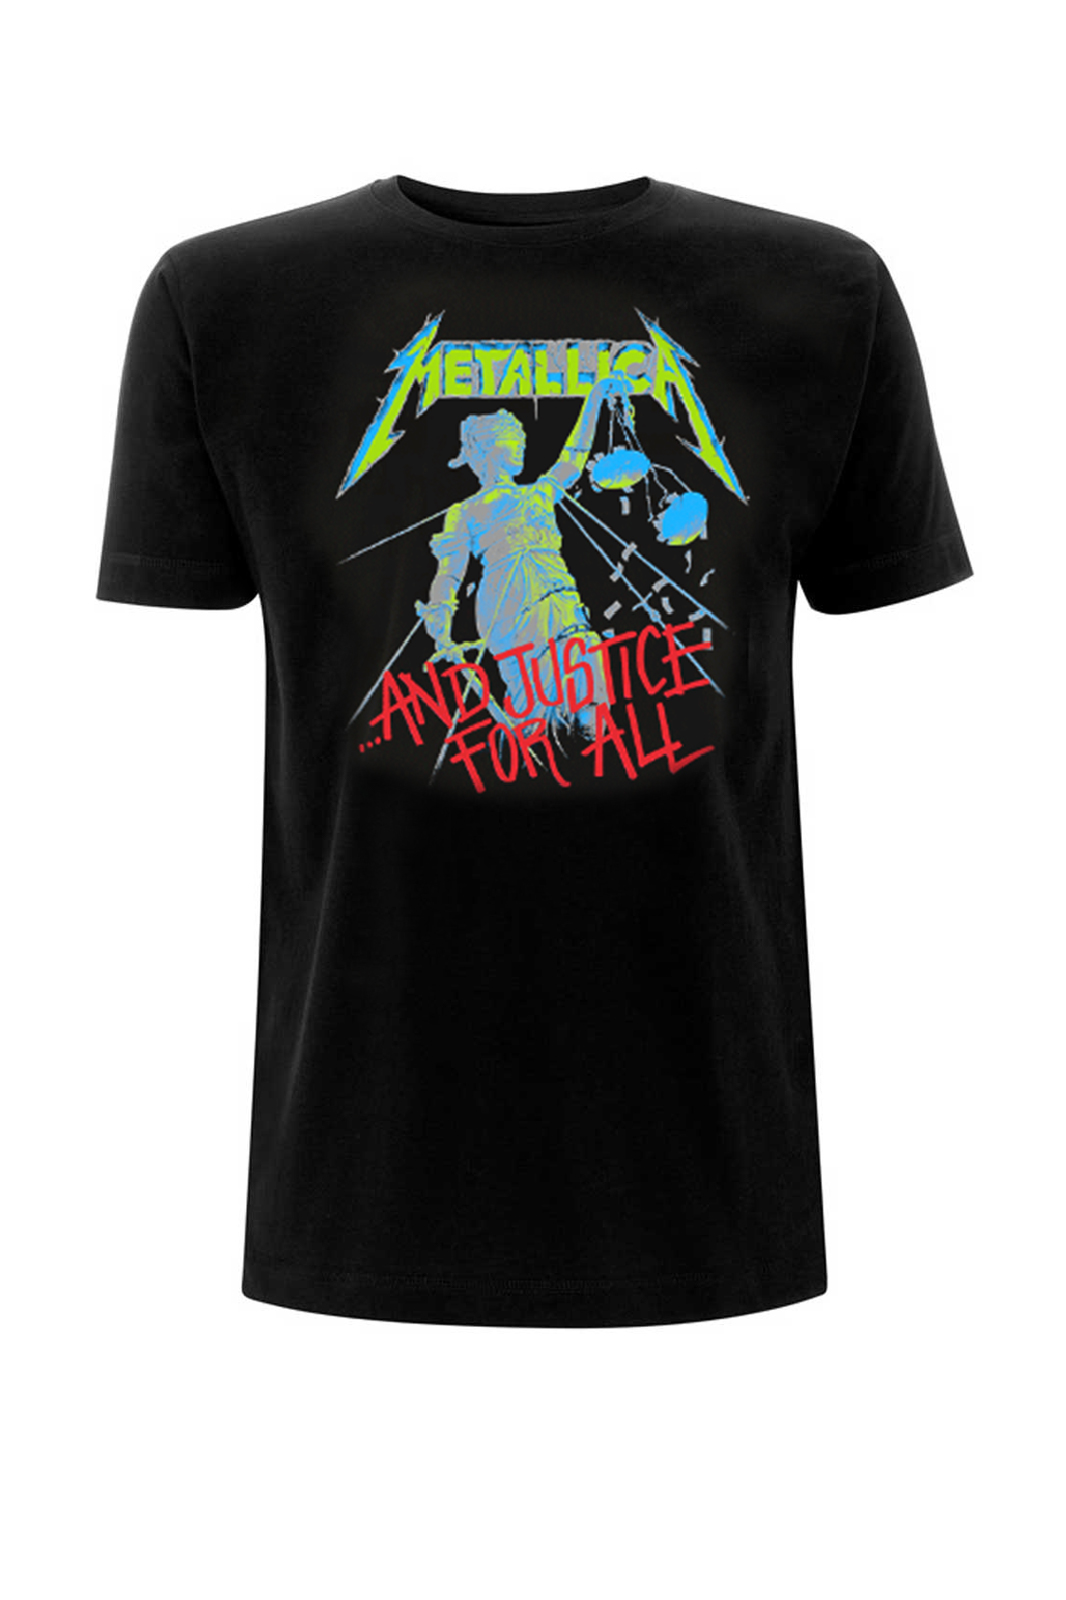 Tee Metallica And Justice For All Black